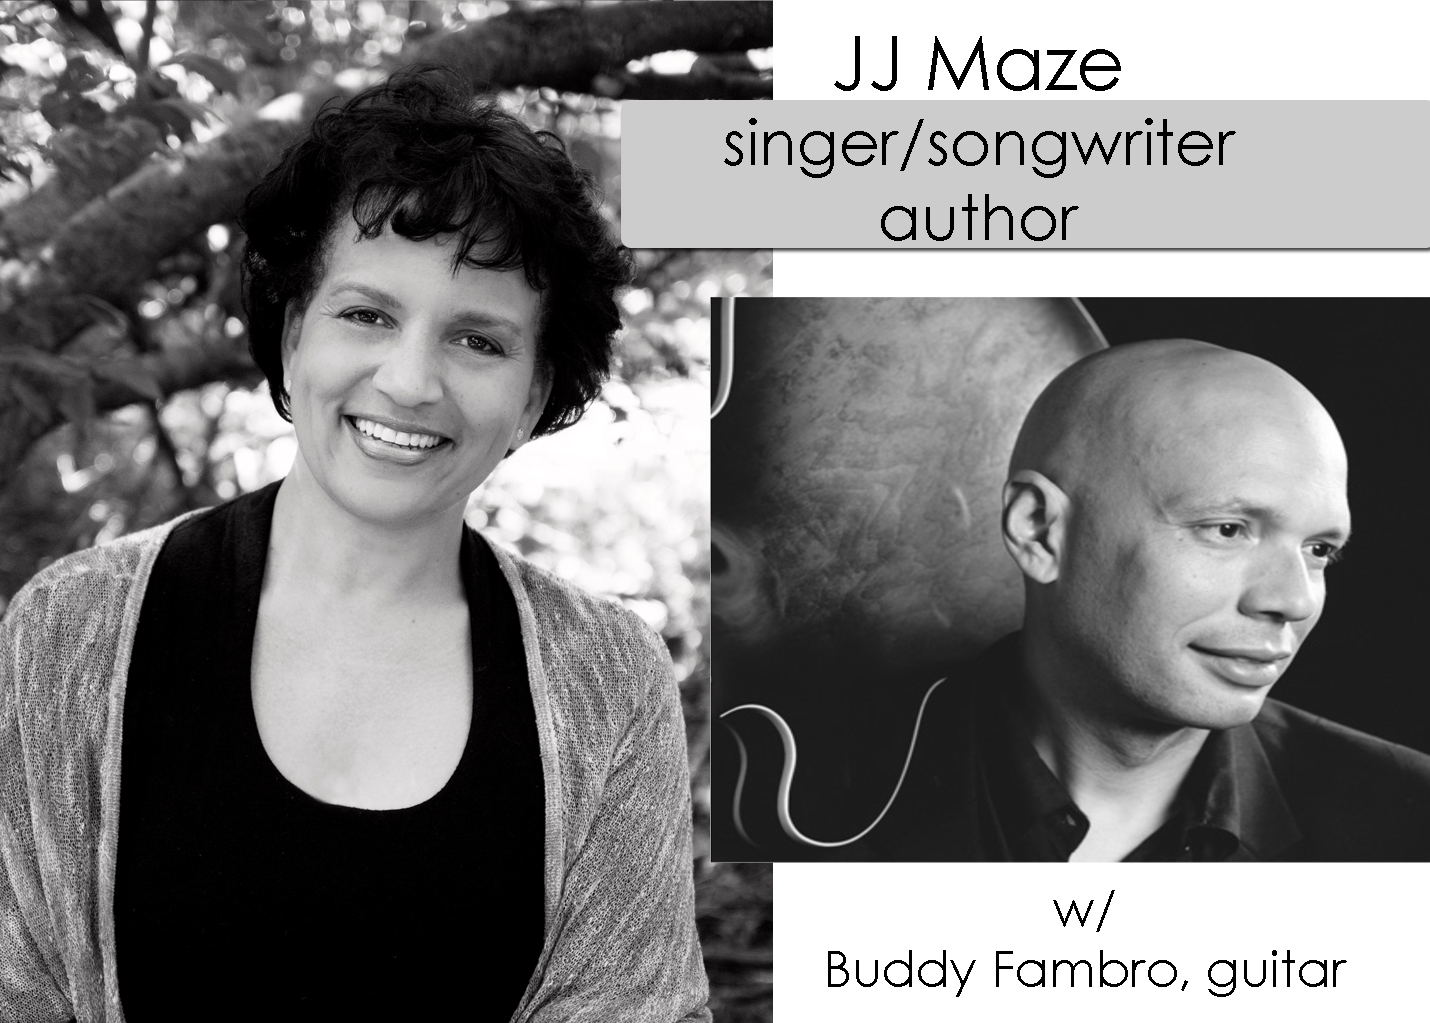 JJ Maze and Buddy Fambro - Jade J. Maze is a singer, composer, and educator that transplanted from the West Coast to Chicago in 1994. Her voice crosses many genres. Jade's debut memoir Walk Until Sunrise is described as